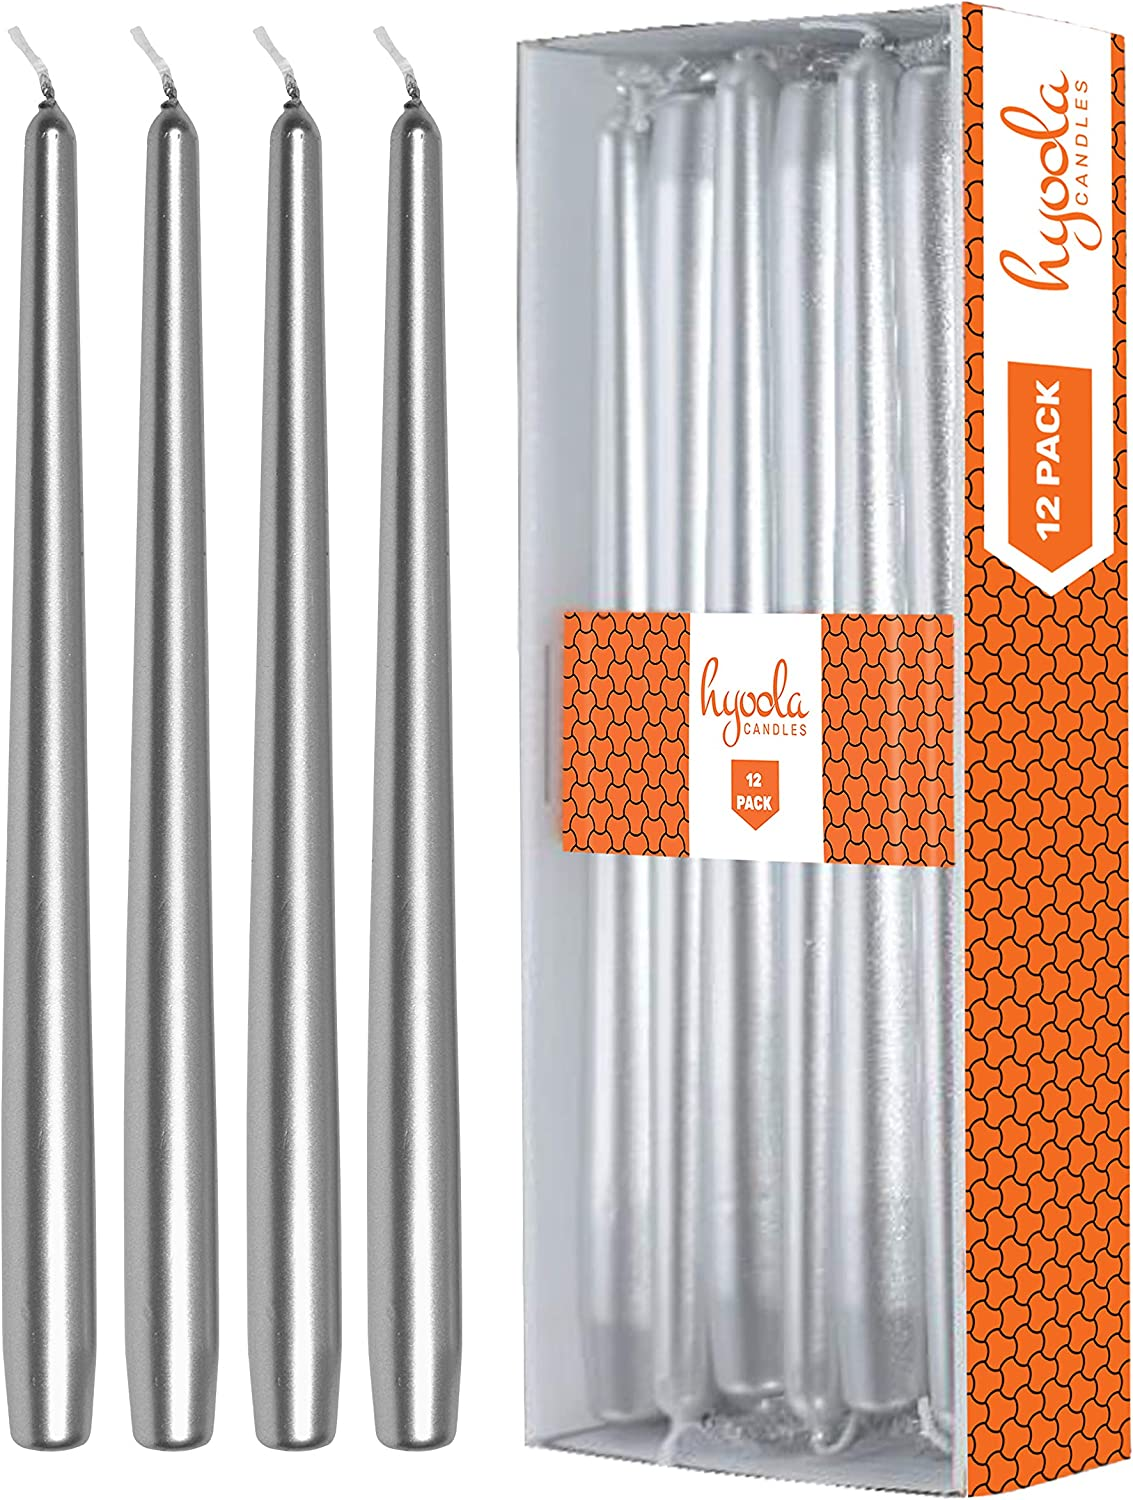 Hyoola 12 Pack Tall Metallic Taper Candles - 12 Inch Silver Metallic, Dripless, Unscented Dinner Candle - Paraffin Wax with Cotton Wicks